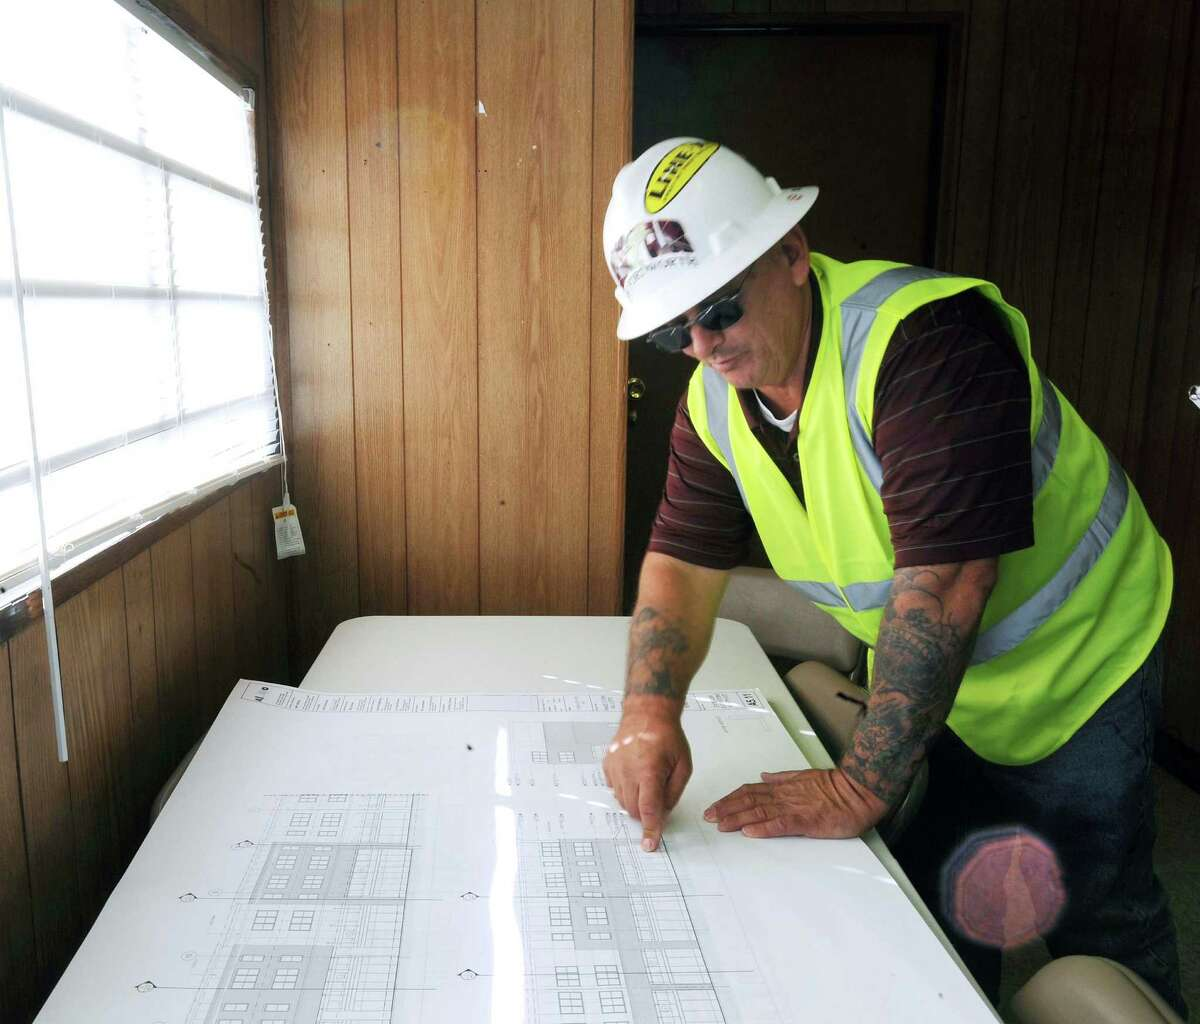 Michael Hotelling, NRP Group project superintendent, looks over plans for the development.